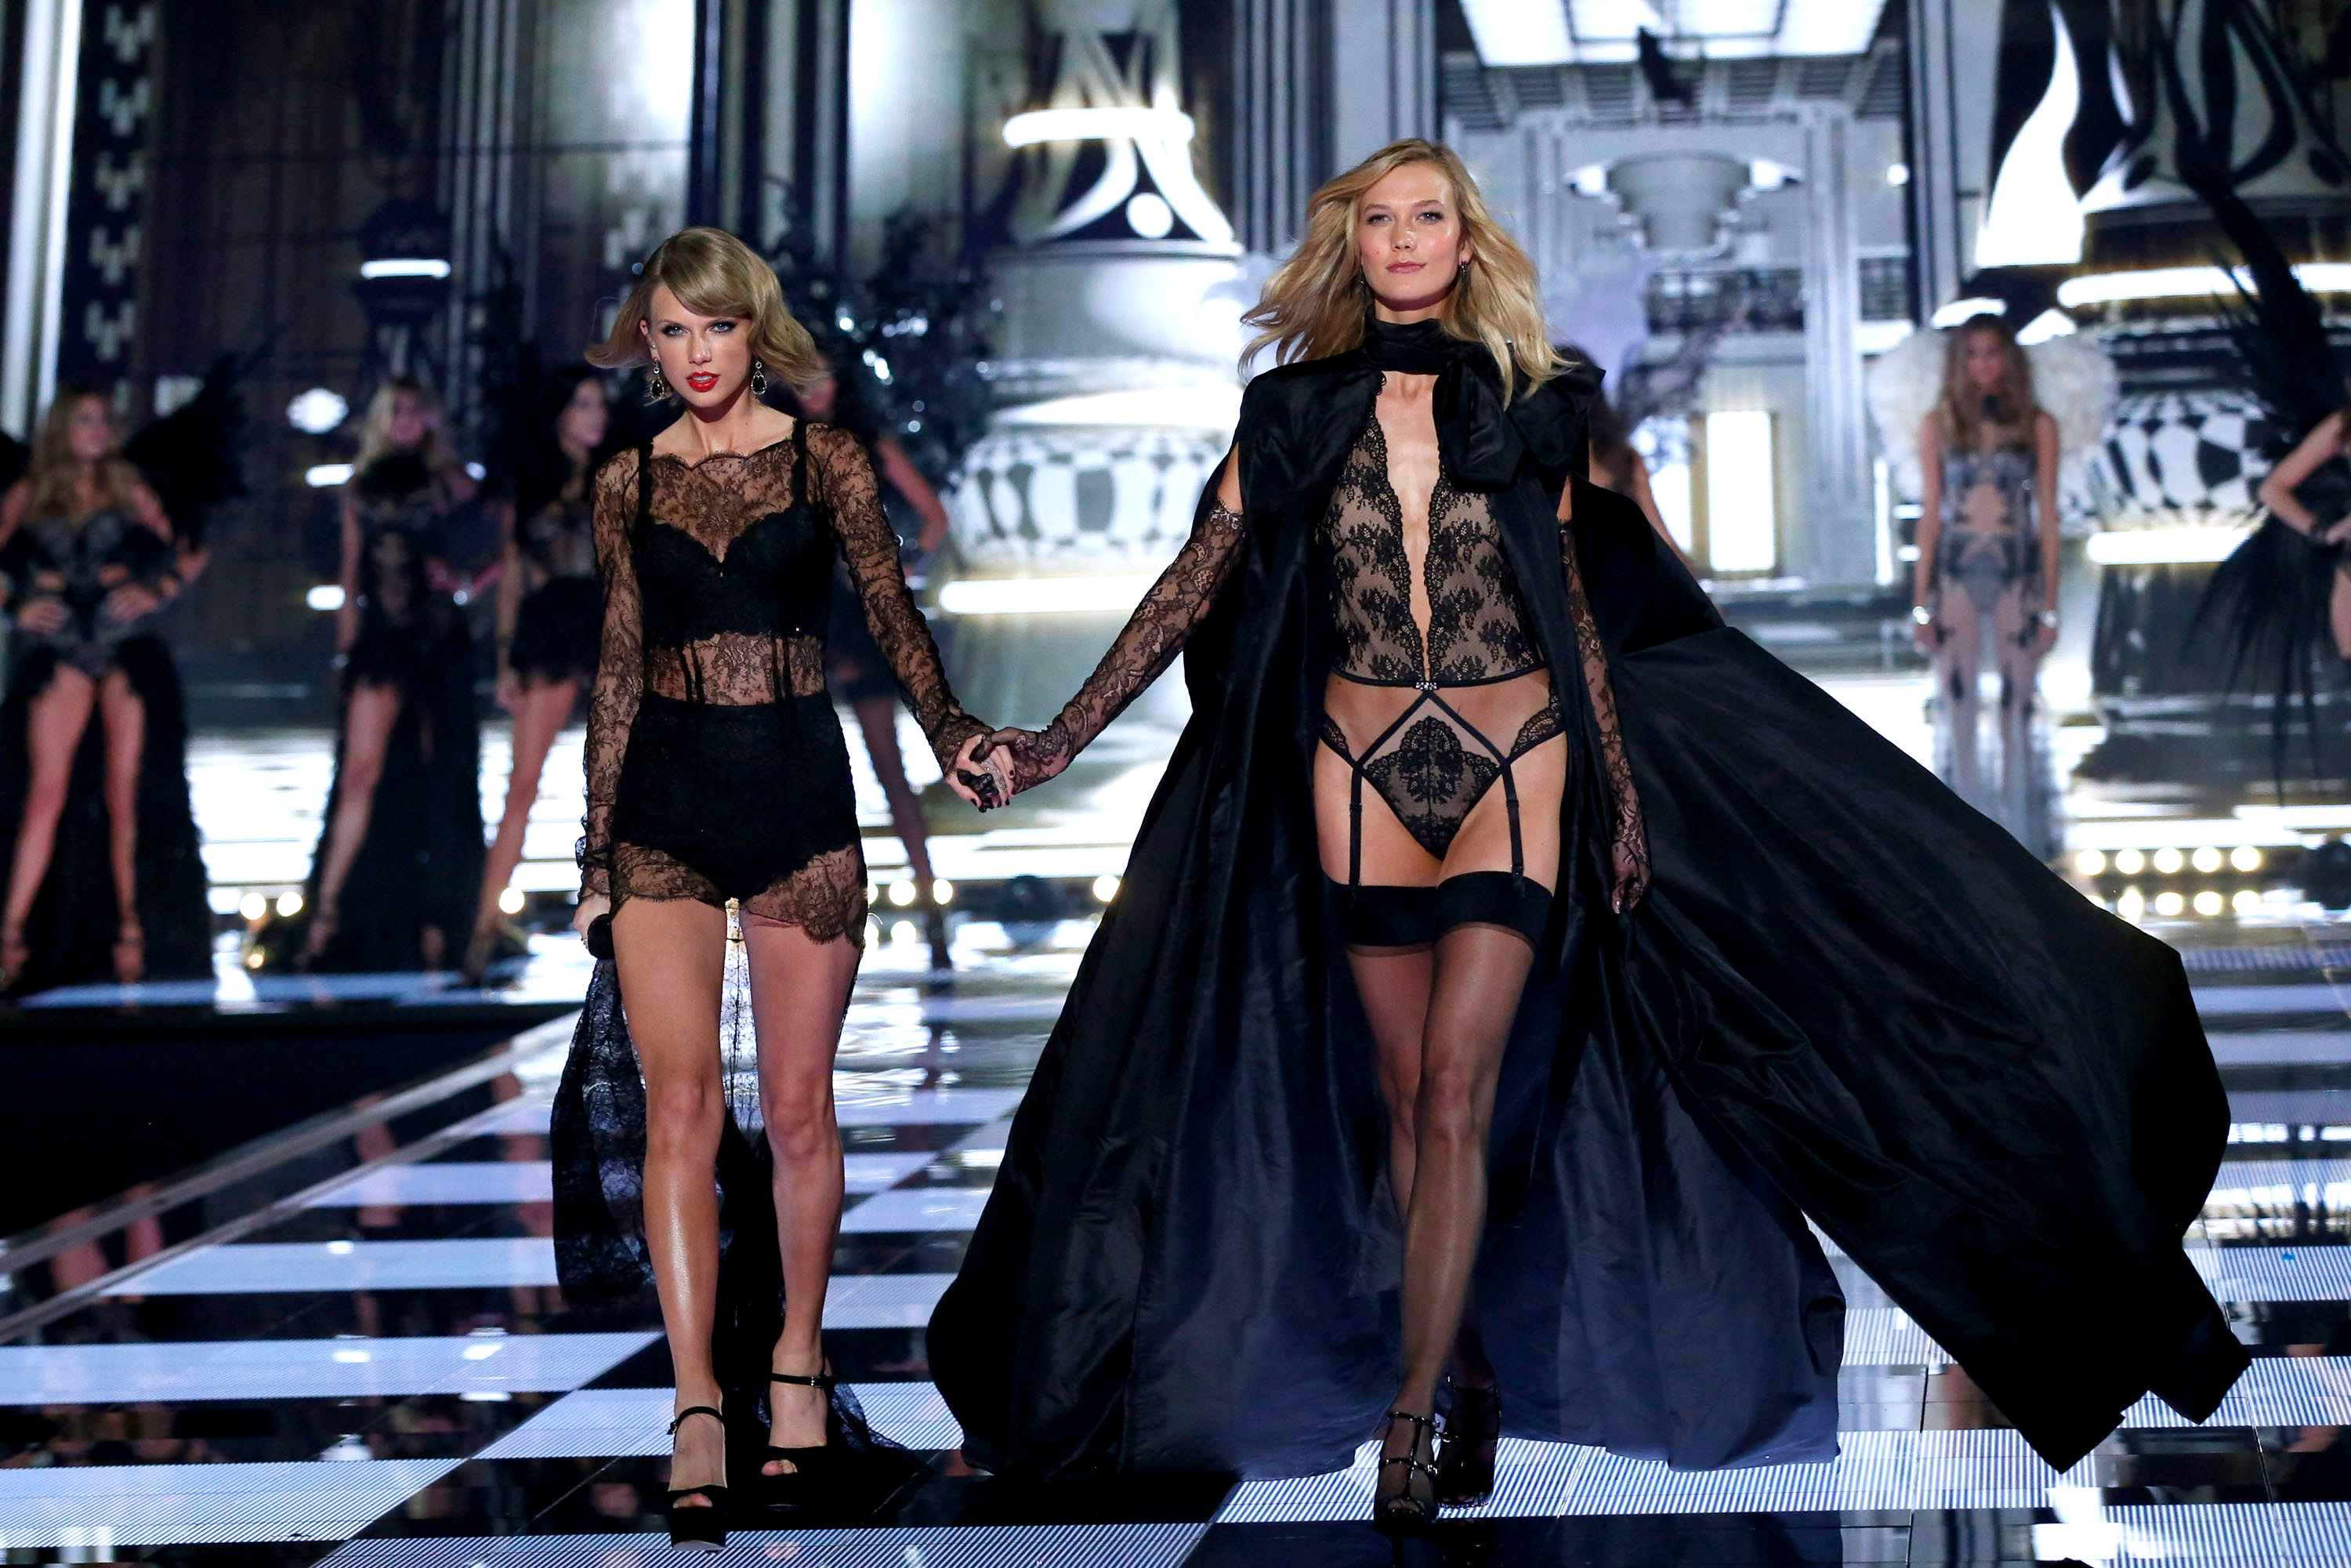 Taylor Swift & Karlie Kloss Are Not Dating, So Let's Spread These 7 Rumors  Instead